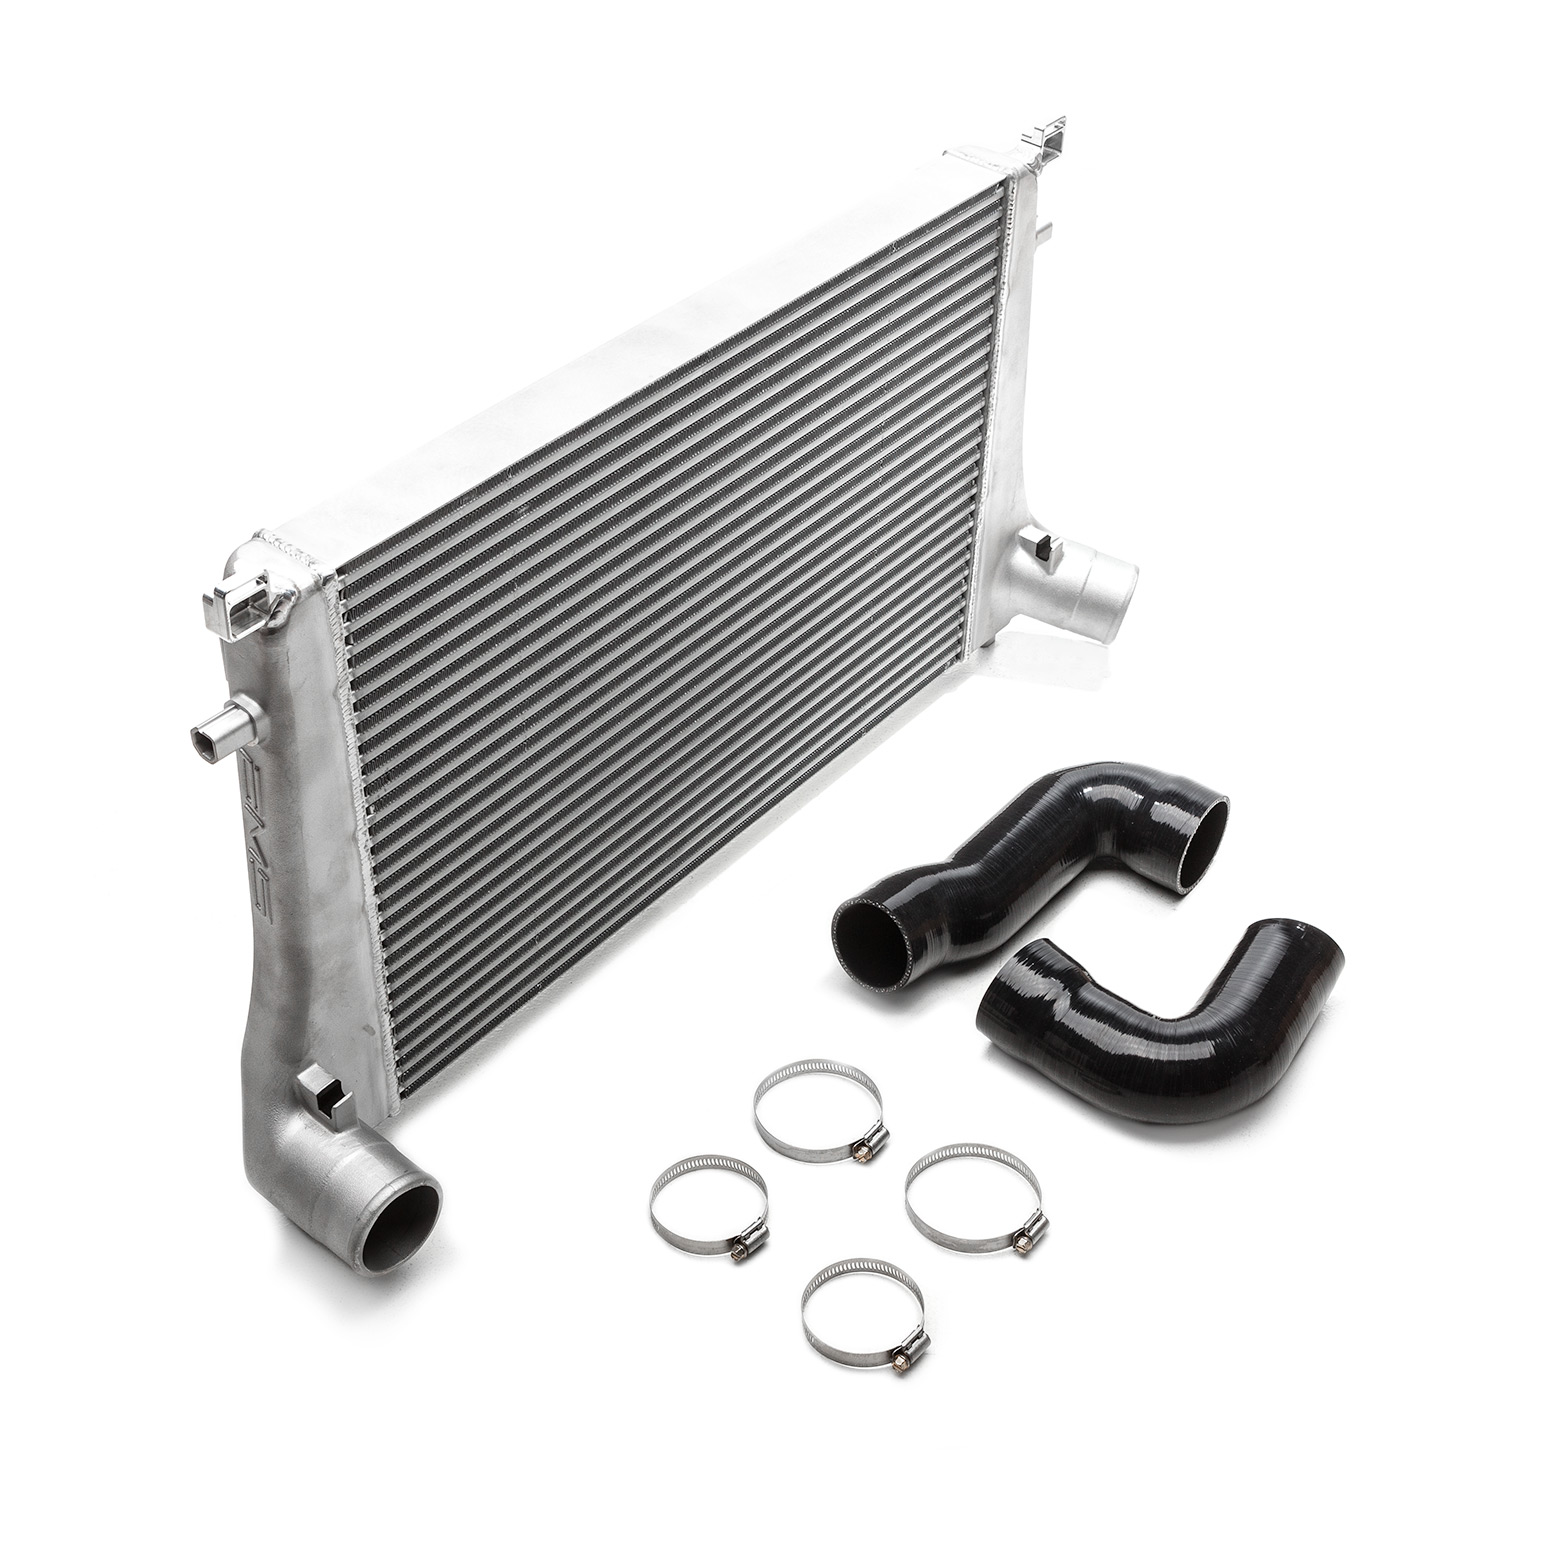 Volkswagen AMS Performance Front Mount Intercooler (Mk7 / Mk7.5) GTI, Golf R